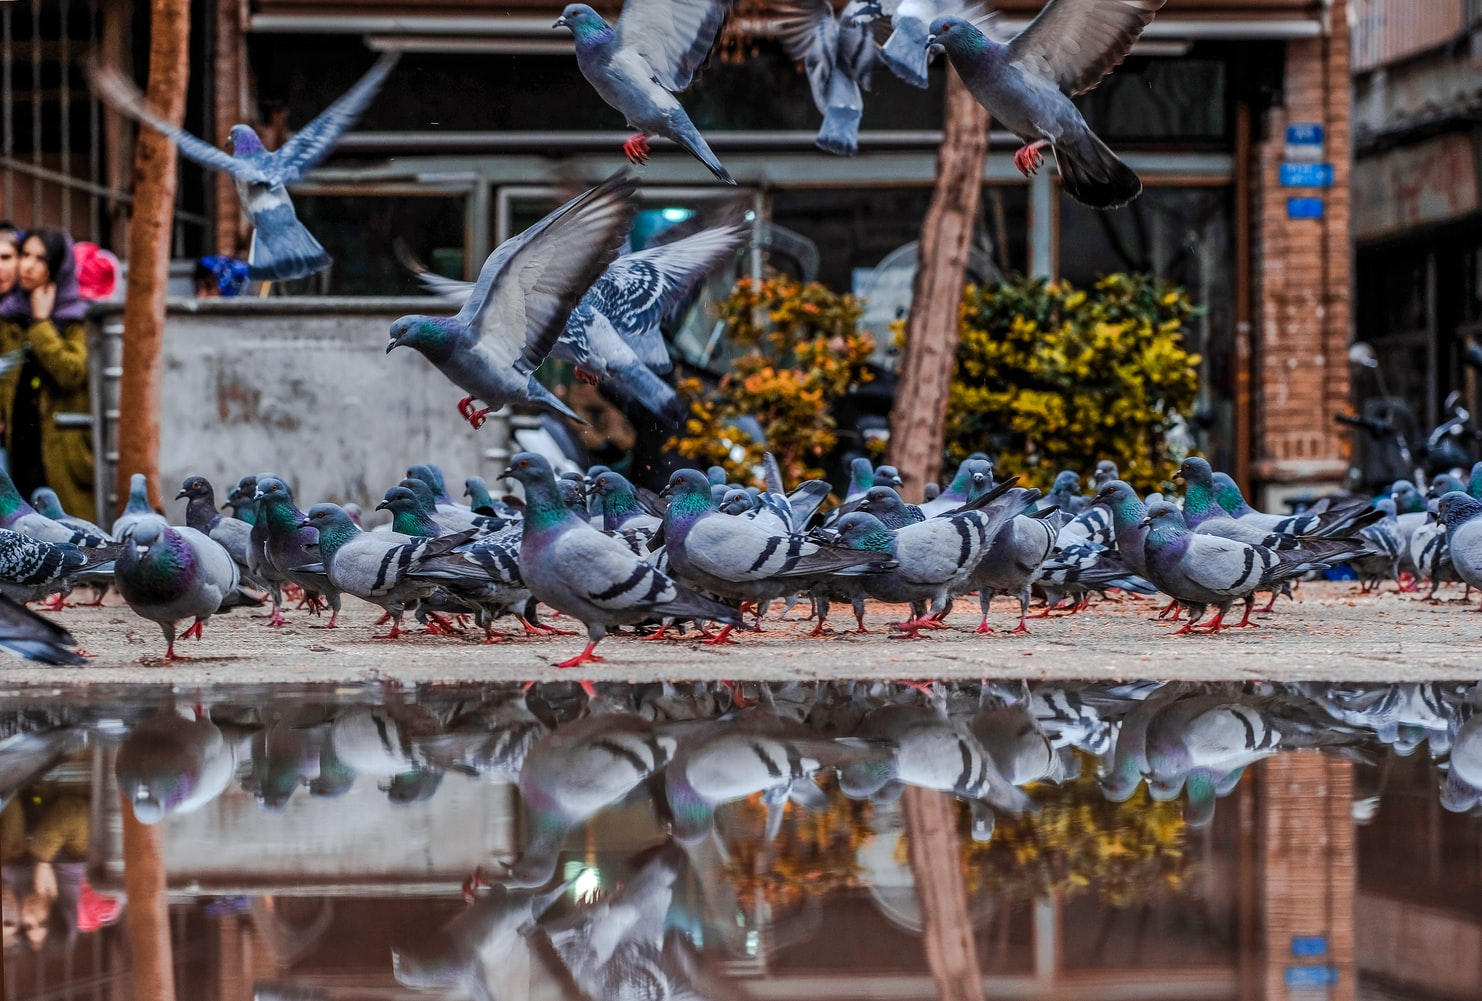 Plenty of pigeon at the park